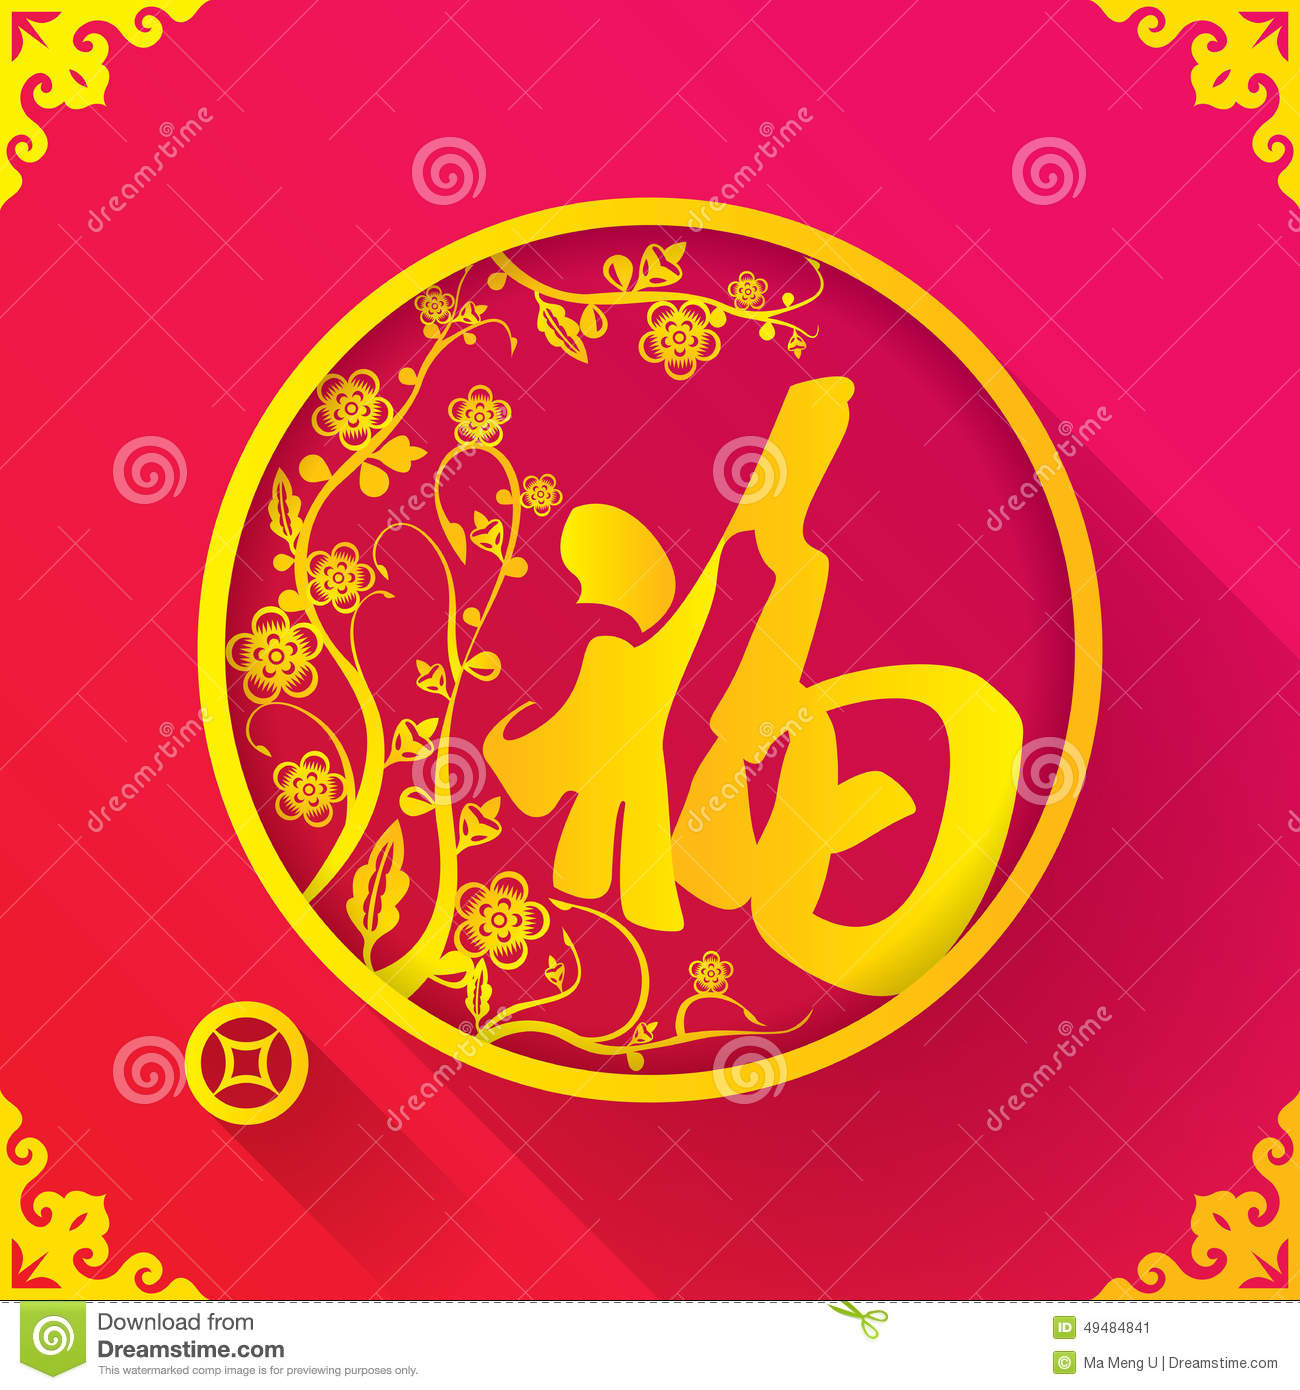 Chinese new year luck design template stock vector illustration chinese new year luck design template buycottarizona Images